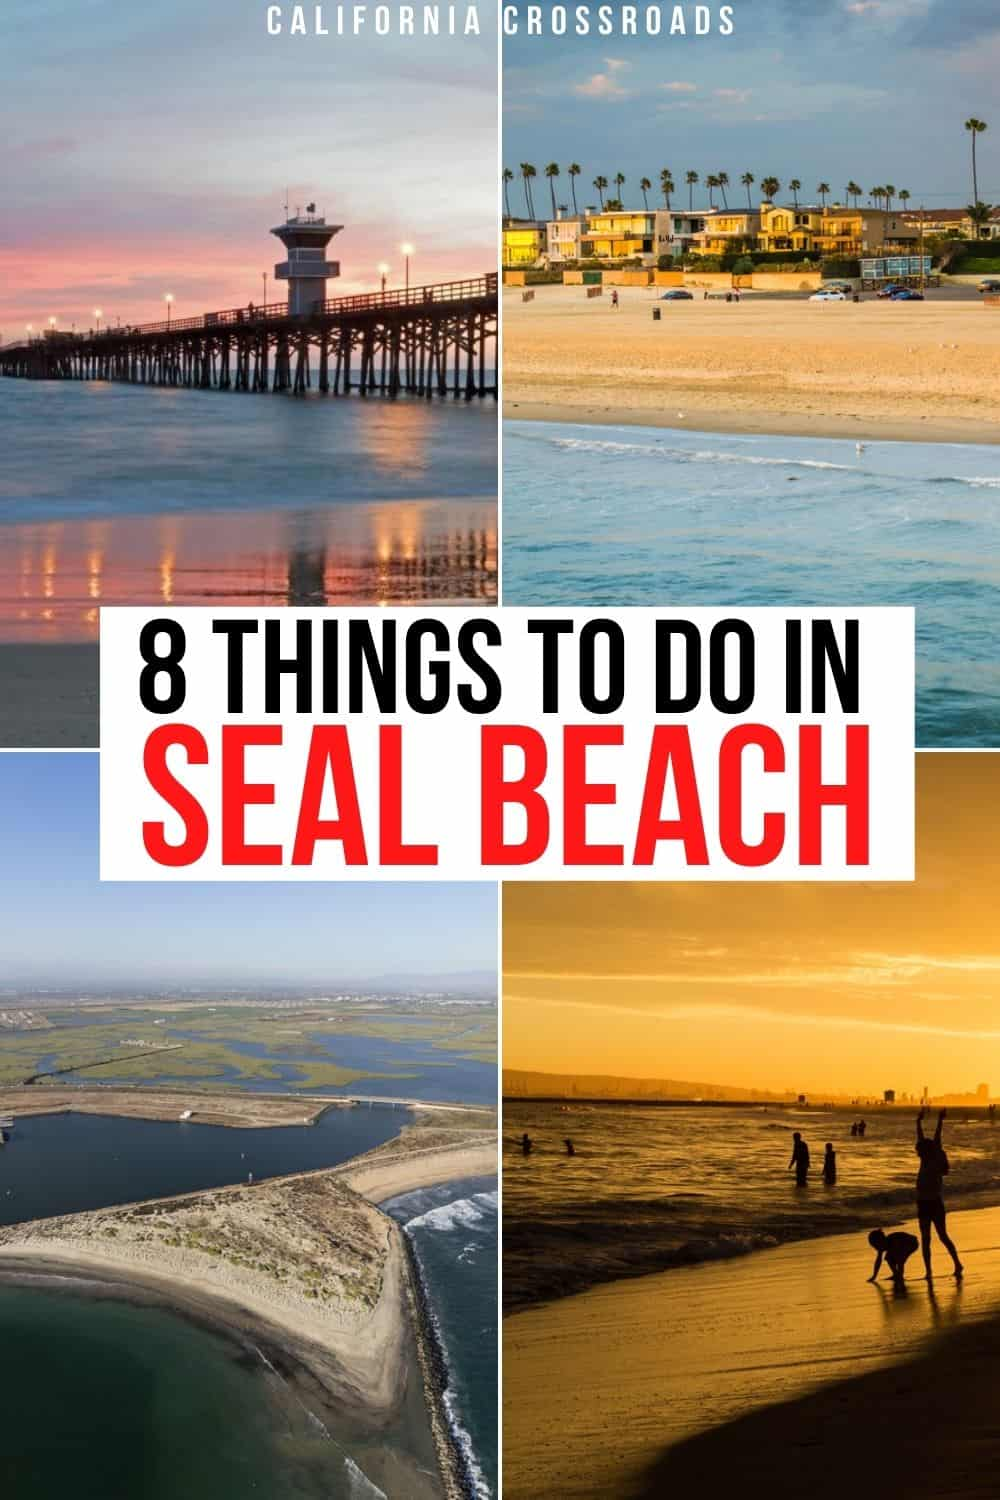 """Text that reads """"8 things to do in Seal Beach"""" with 4 photos. One shows the pier at sunset, one shows the beach from the pier, one shows a drone aerial view of Seal Beach, one is people playing in the sand at sunset."""